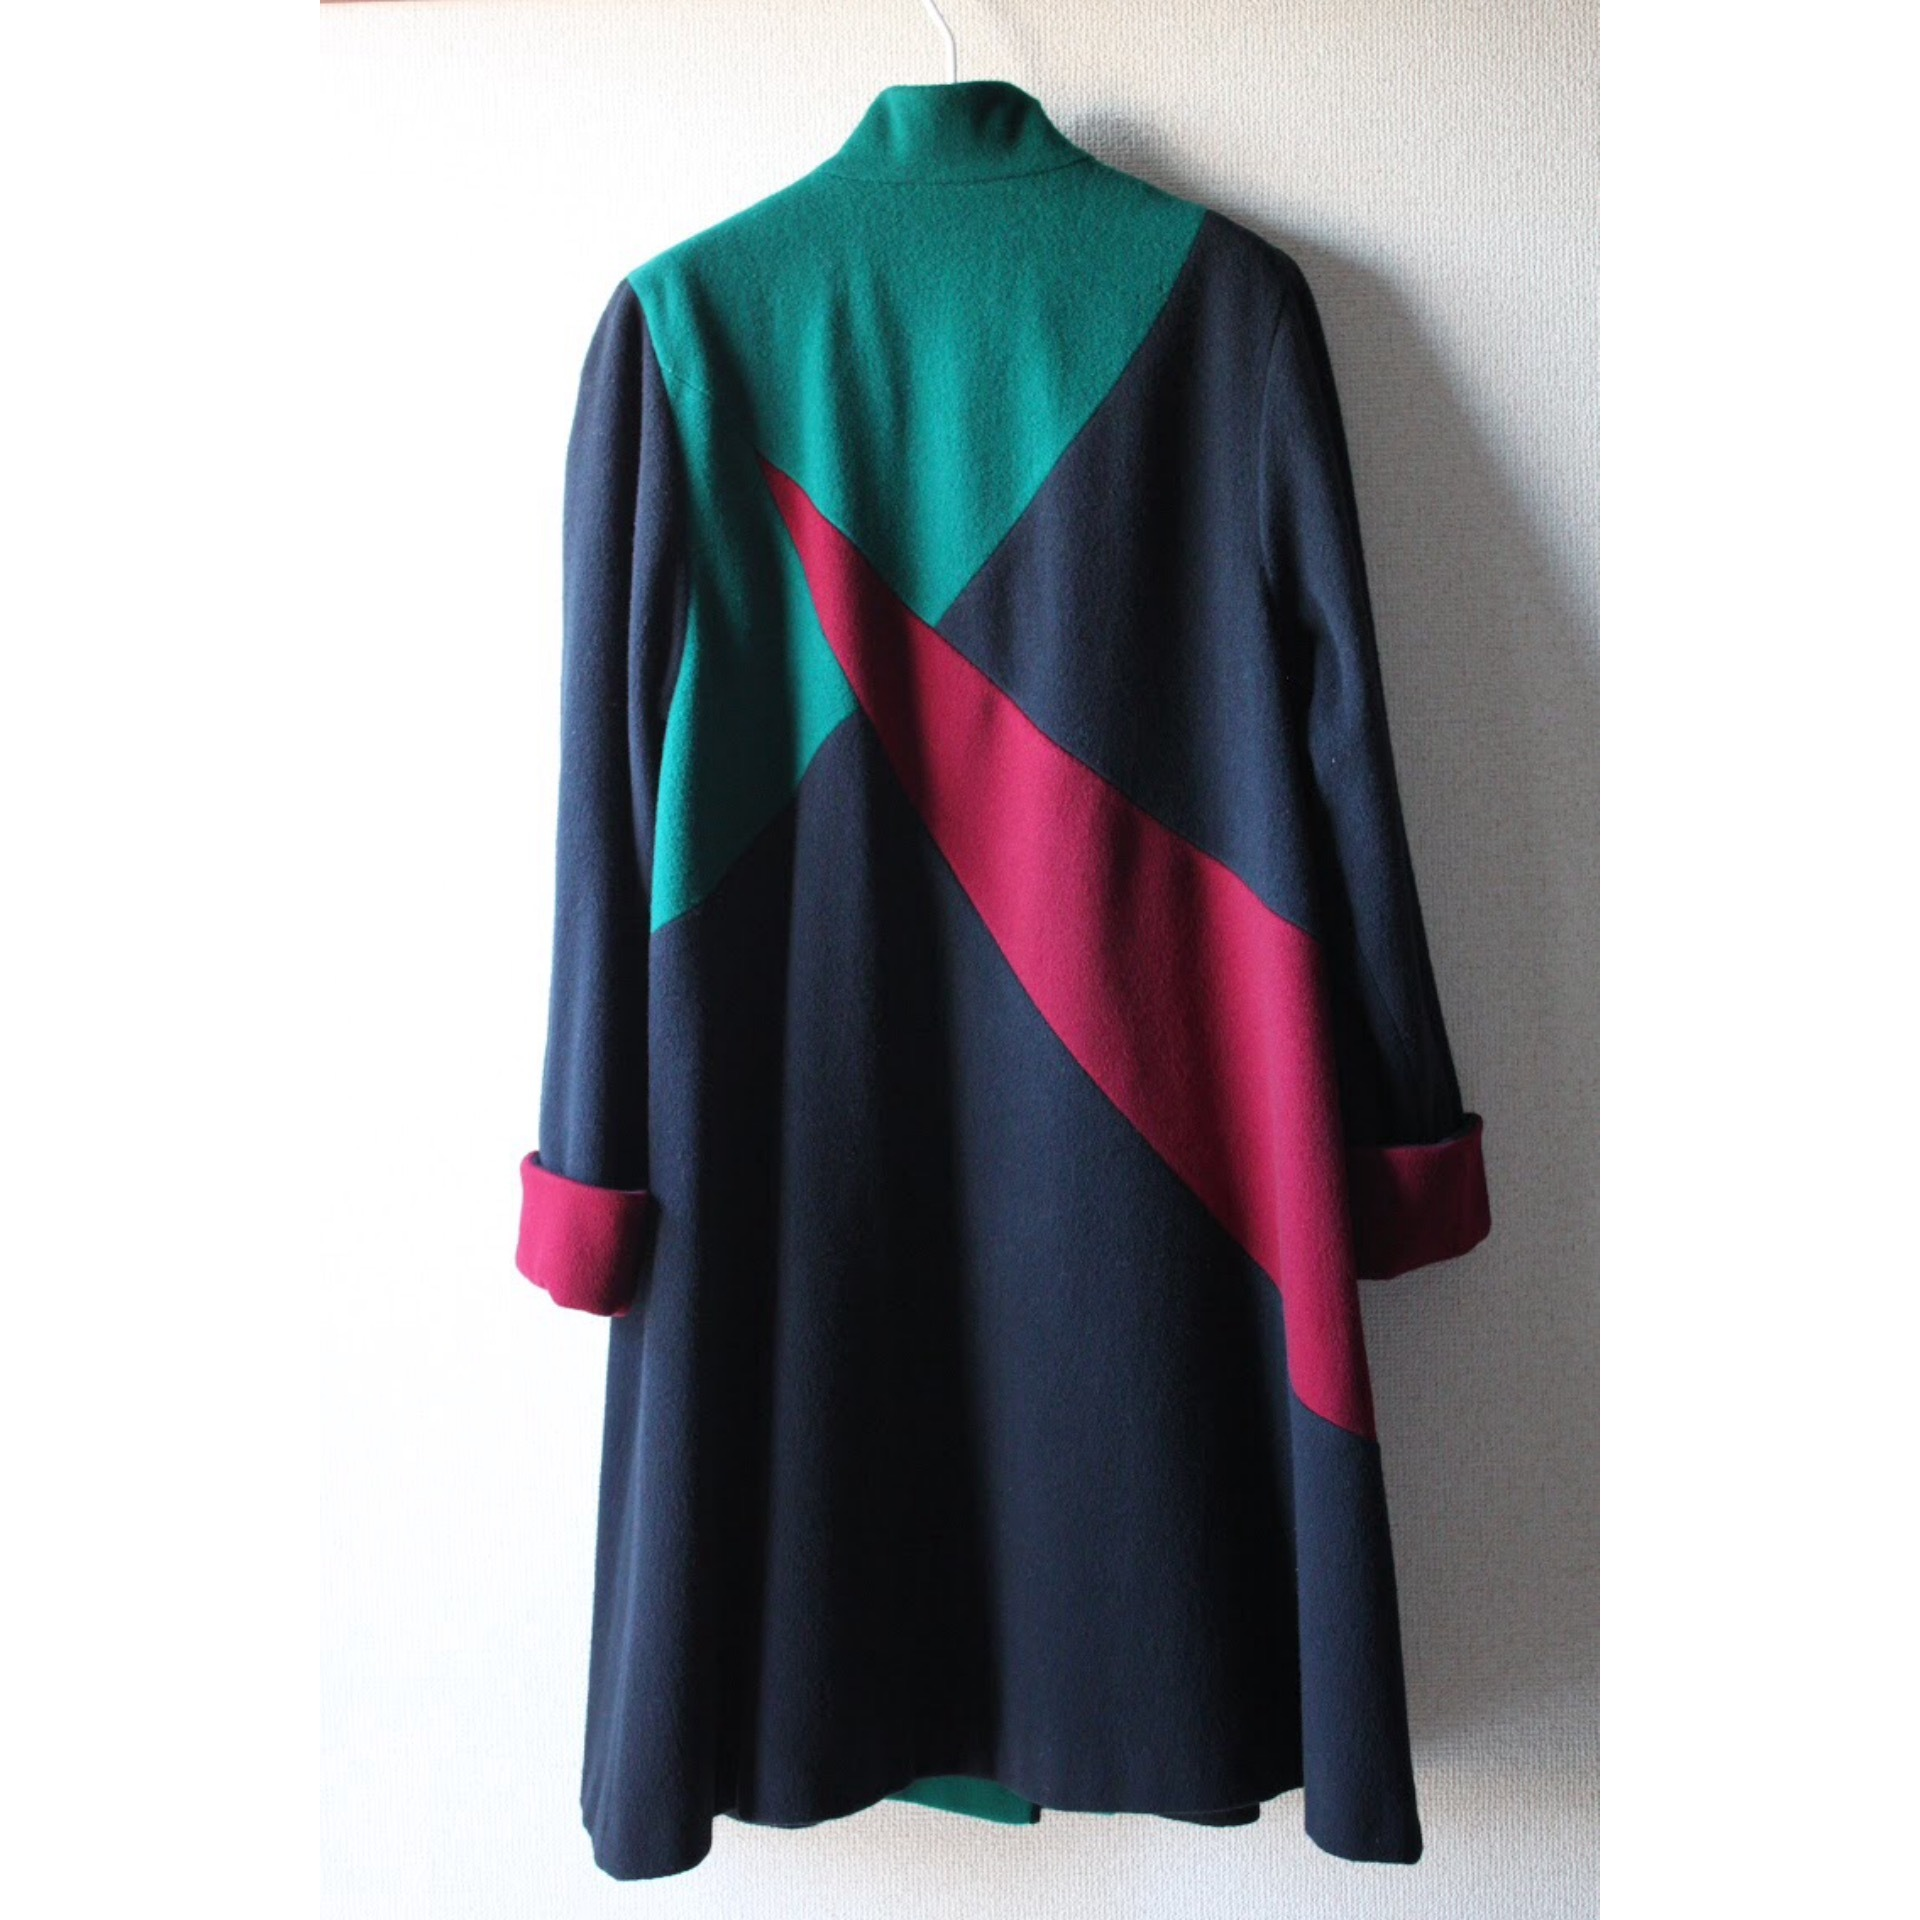 Vintage geometric pattern coat